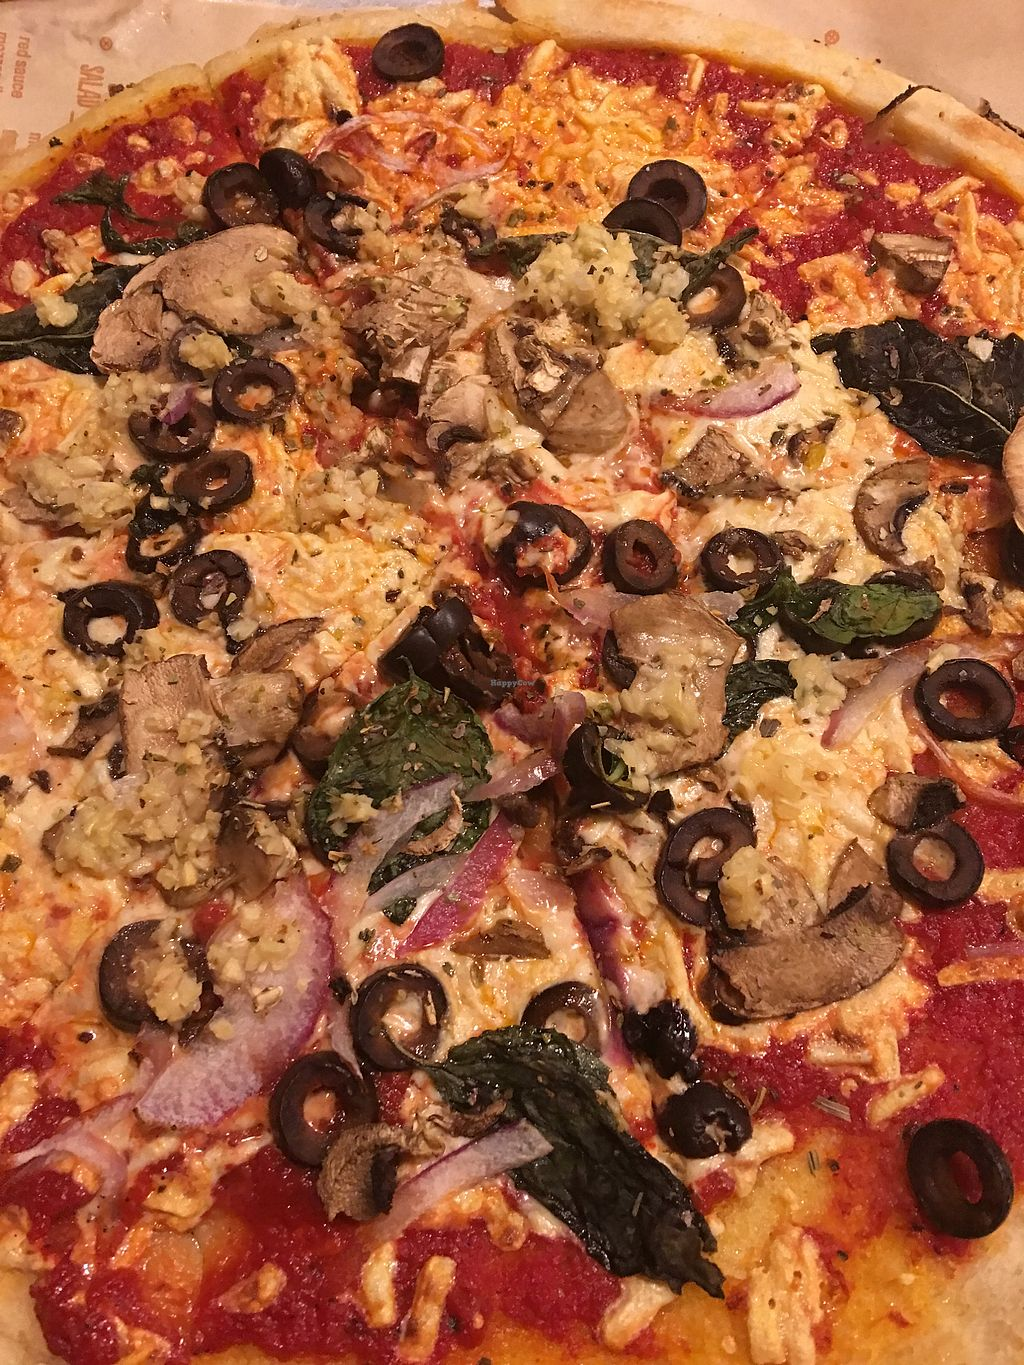 """Photo of Blaze Pizza  by <a href=""""/members/profile/HeatherArmstrong"""">HeatherArmstrong</a> <br/>Yumm  <br/> November 30, 2017  - <a href='/contact/abuse/image/81159/330708'>Report</a>"""